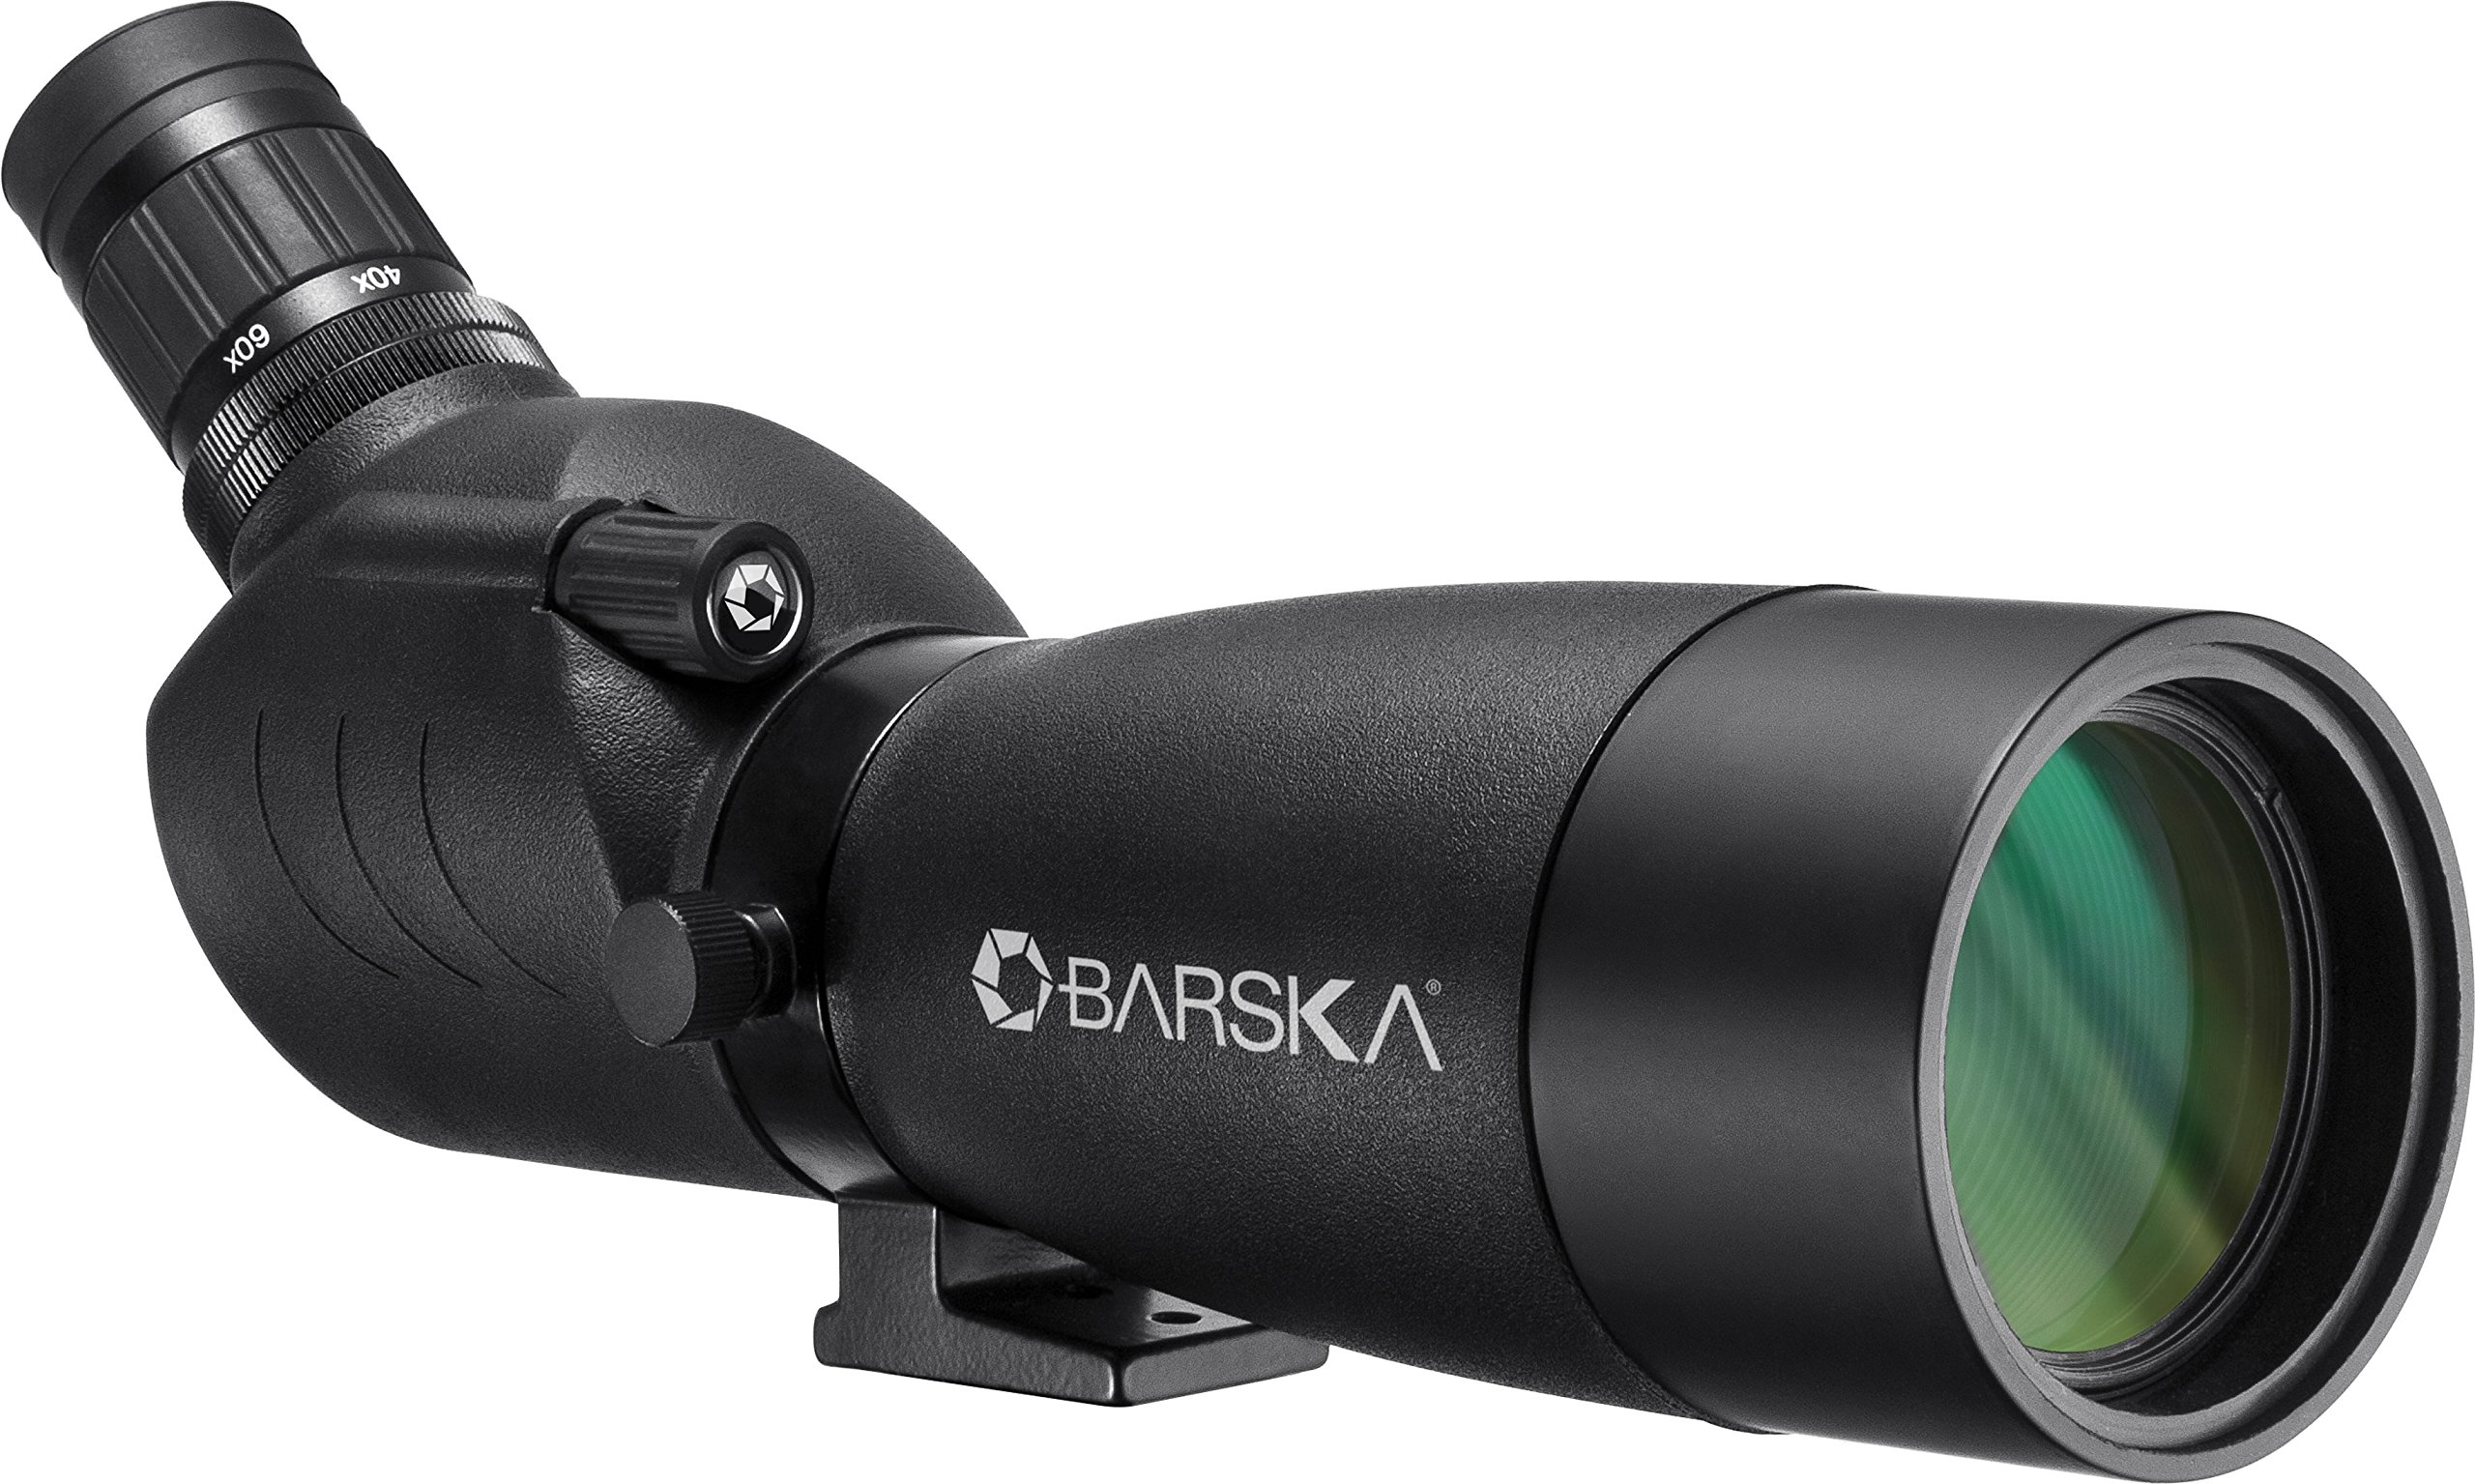 BARSKA 20-60X60 Blackhawk Angled Spotting Scope, 40mm, Black